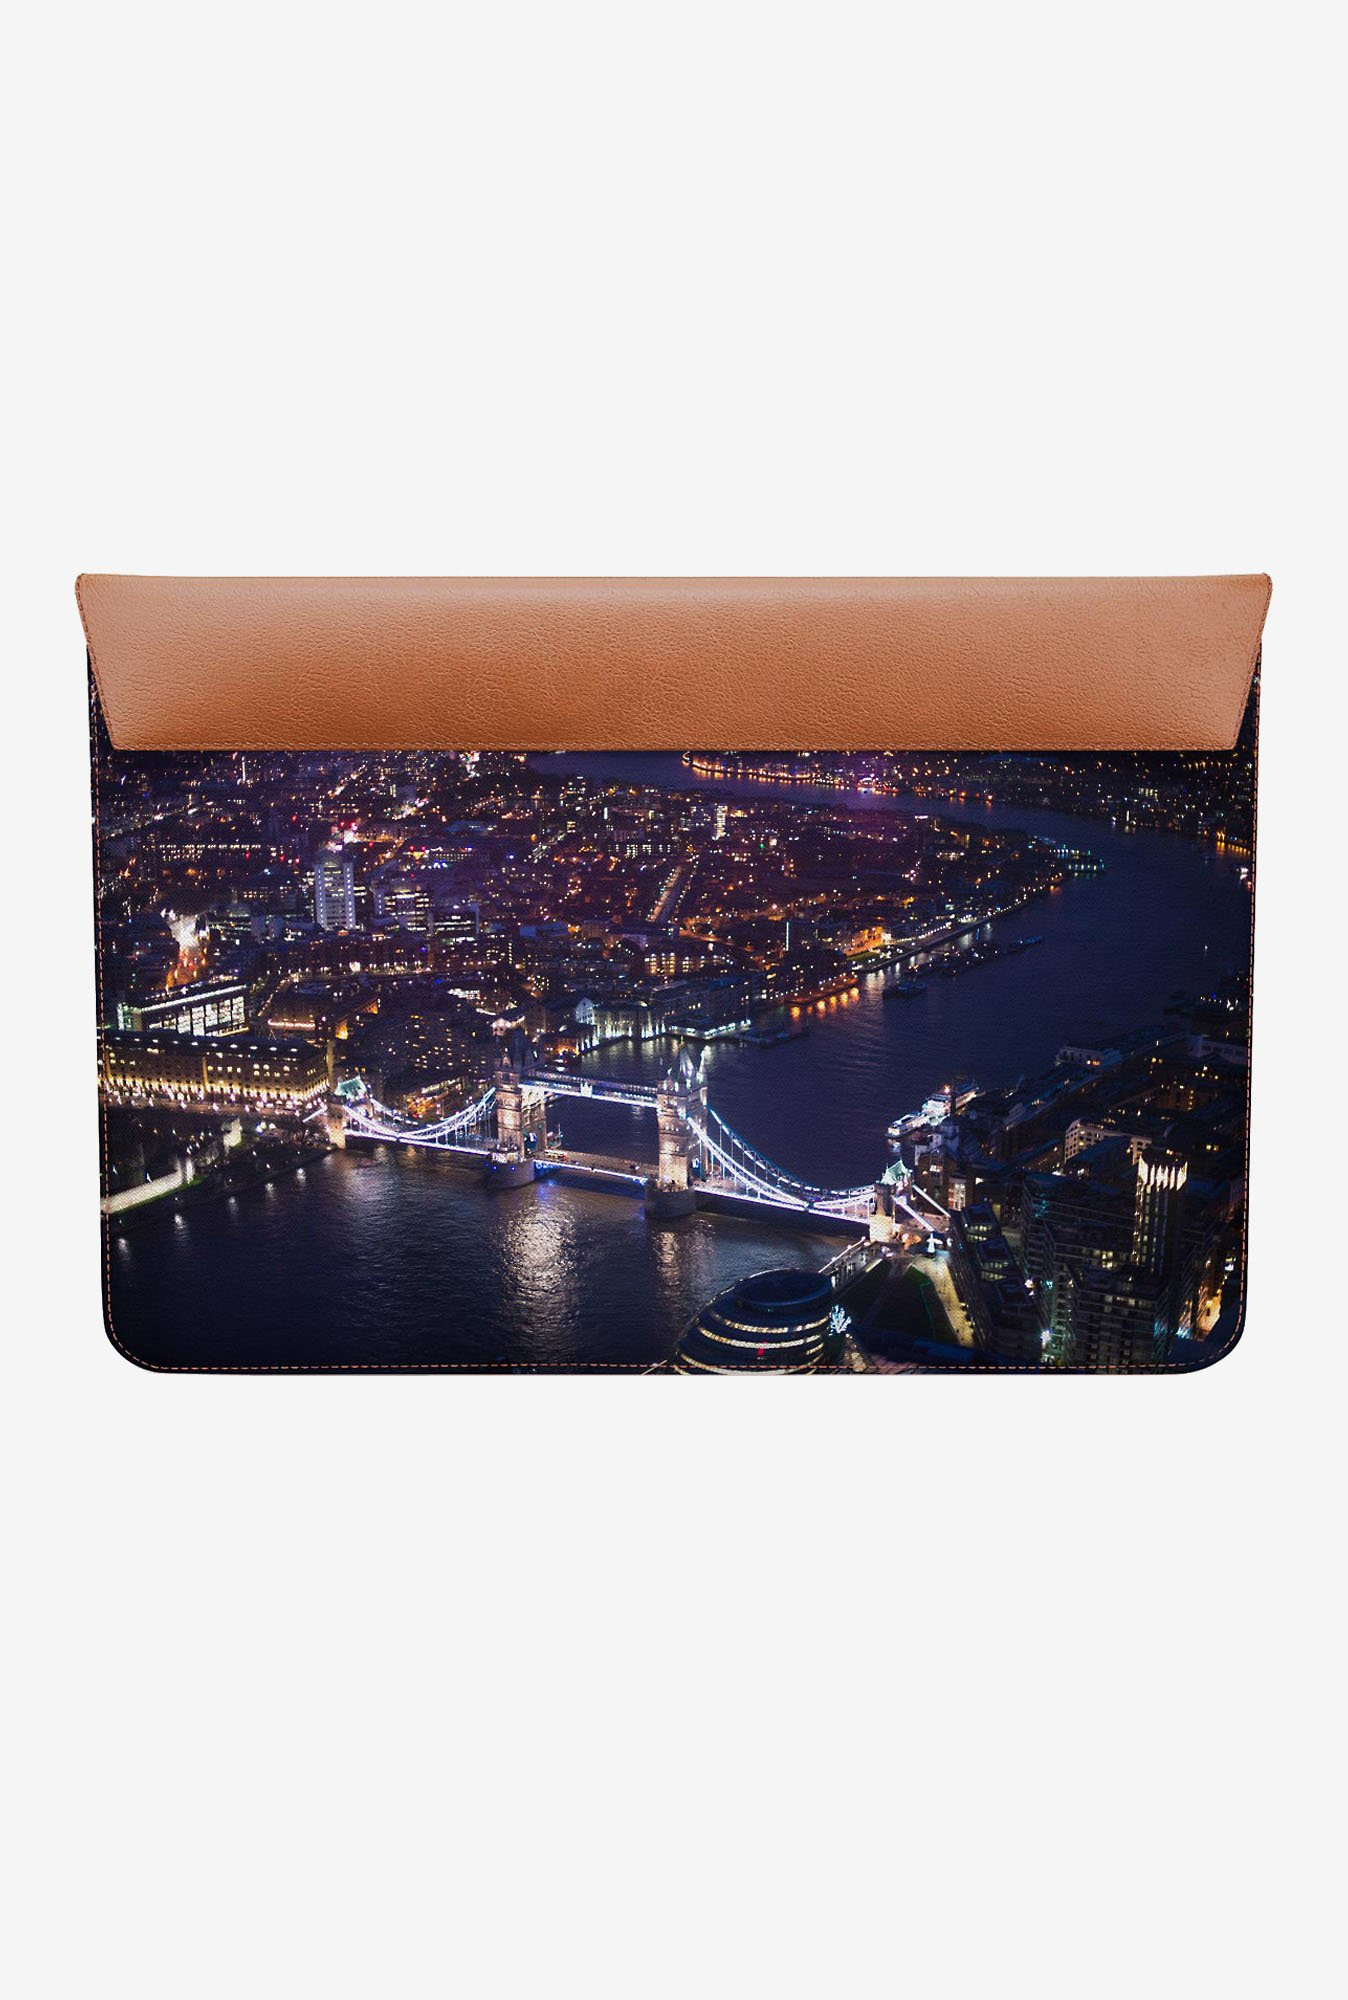 DailyObjects Thames by Night MacBook Air 11 Envelope Sleeve